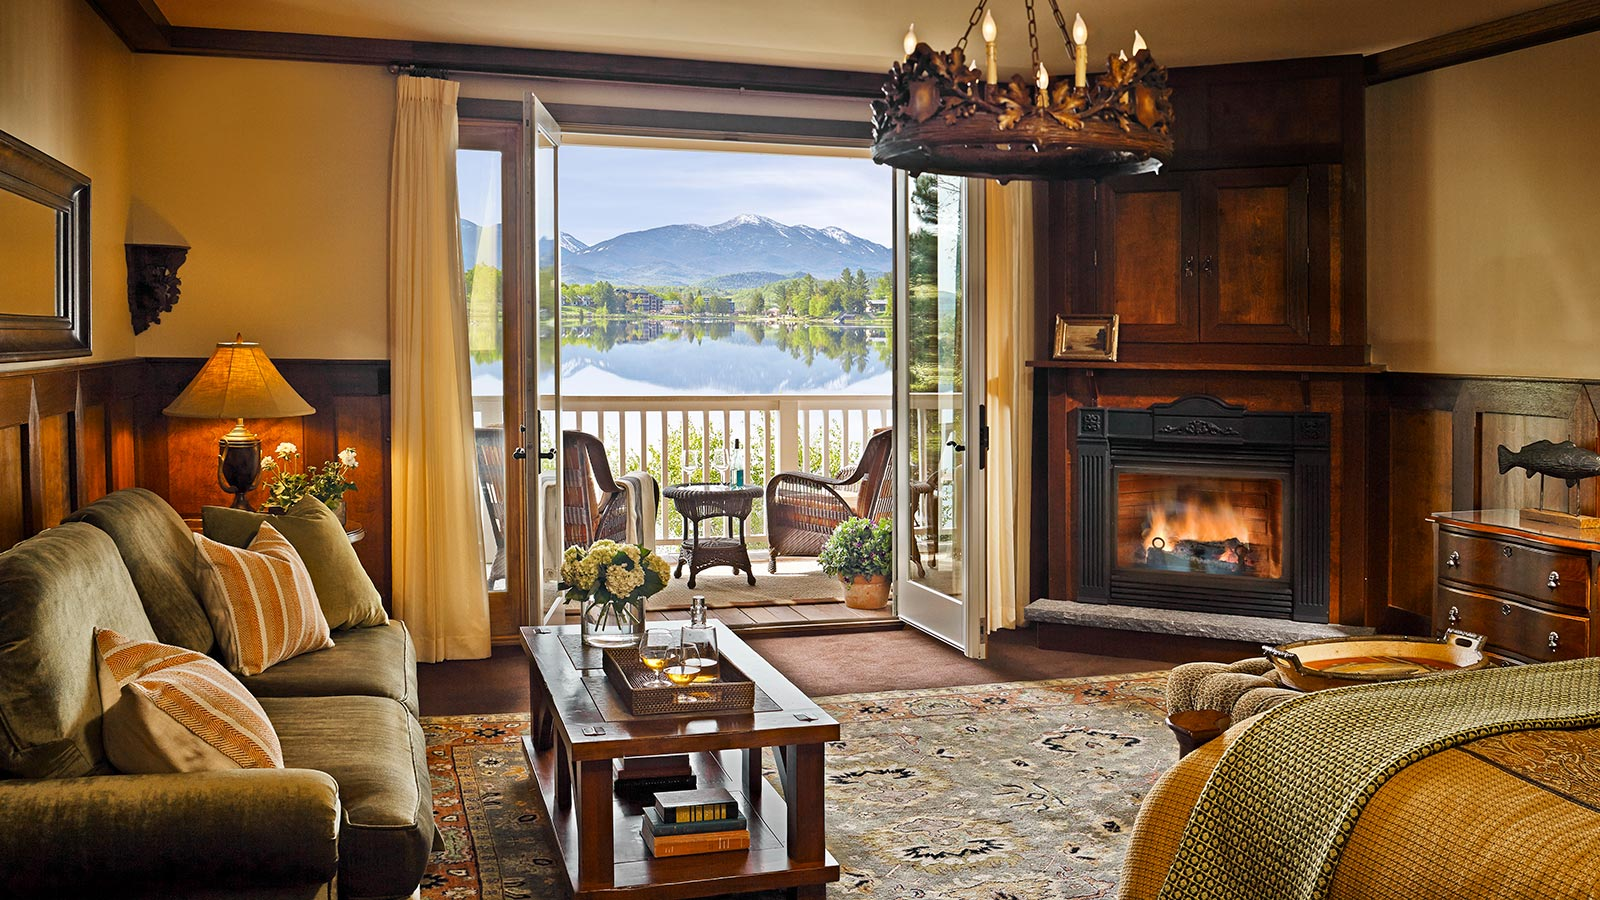 Suite with view of the lake and mountain